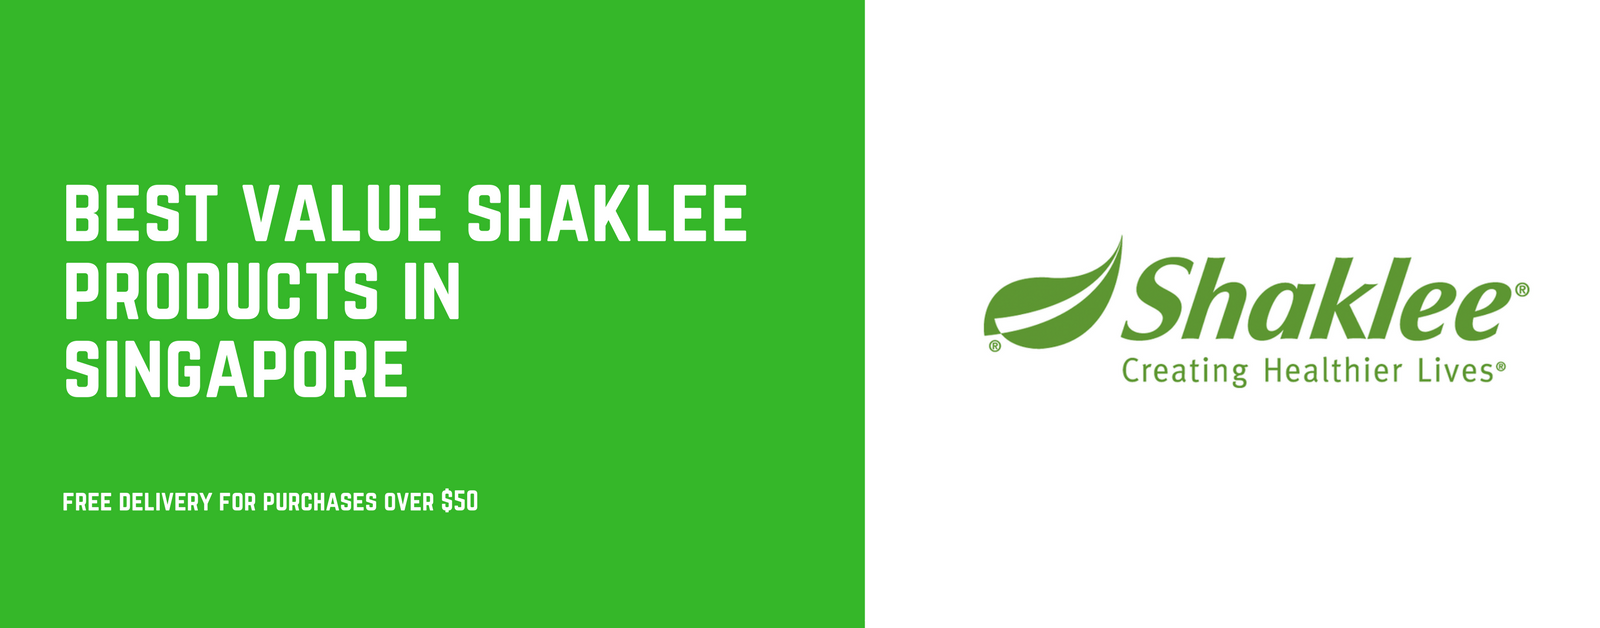 Shaklee Products in Singapore